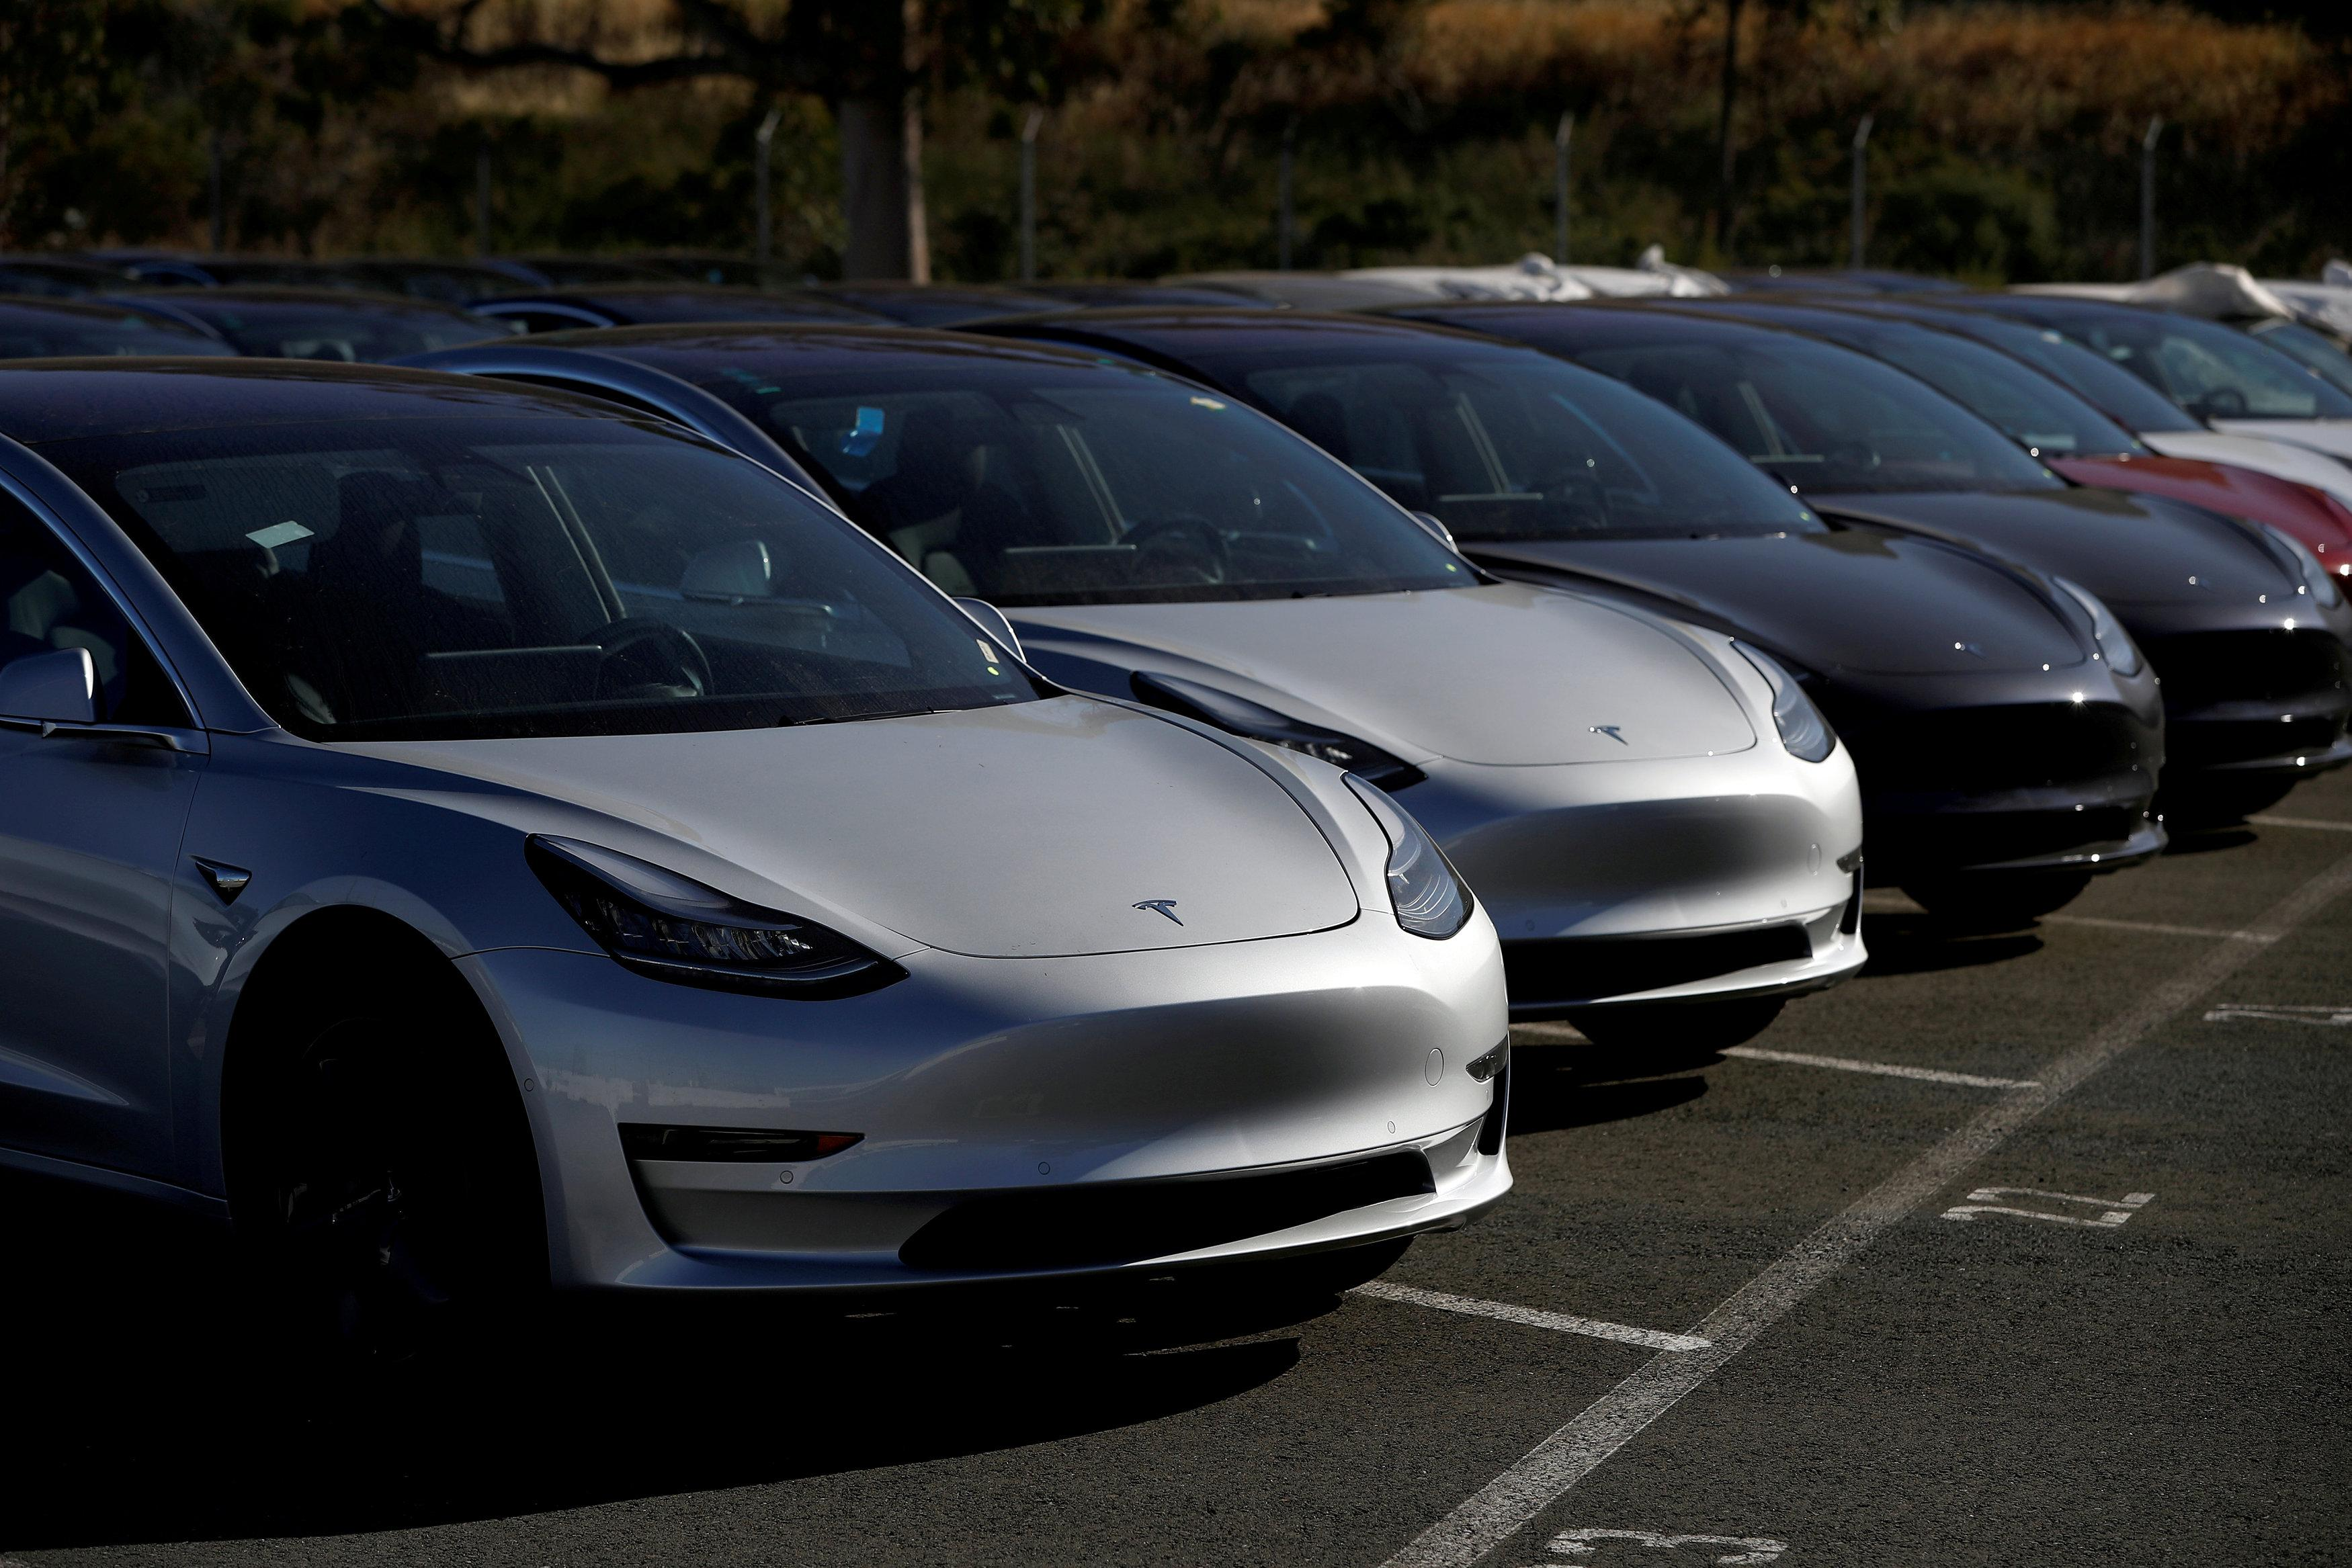 A row of new Tesla Model 3 electric vehicles is seen at a parking lot in Richmond, California, U.S. June 22, 2018.  Stephen Lam